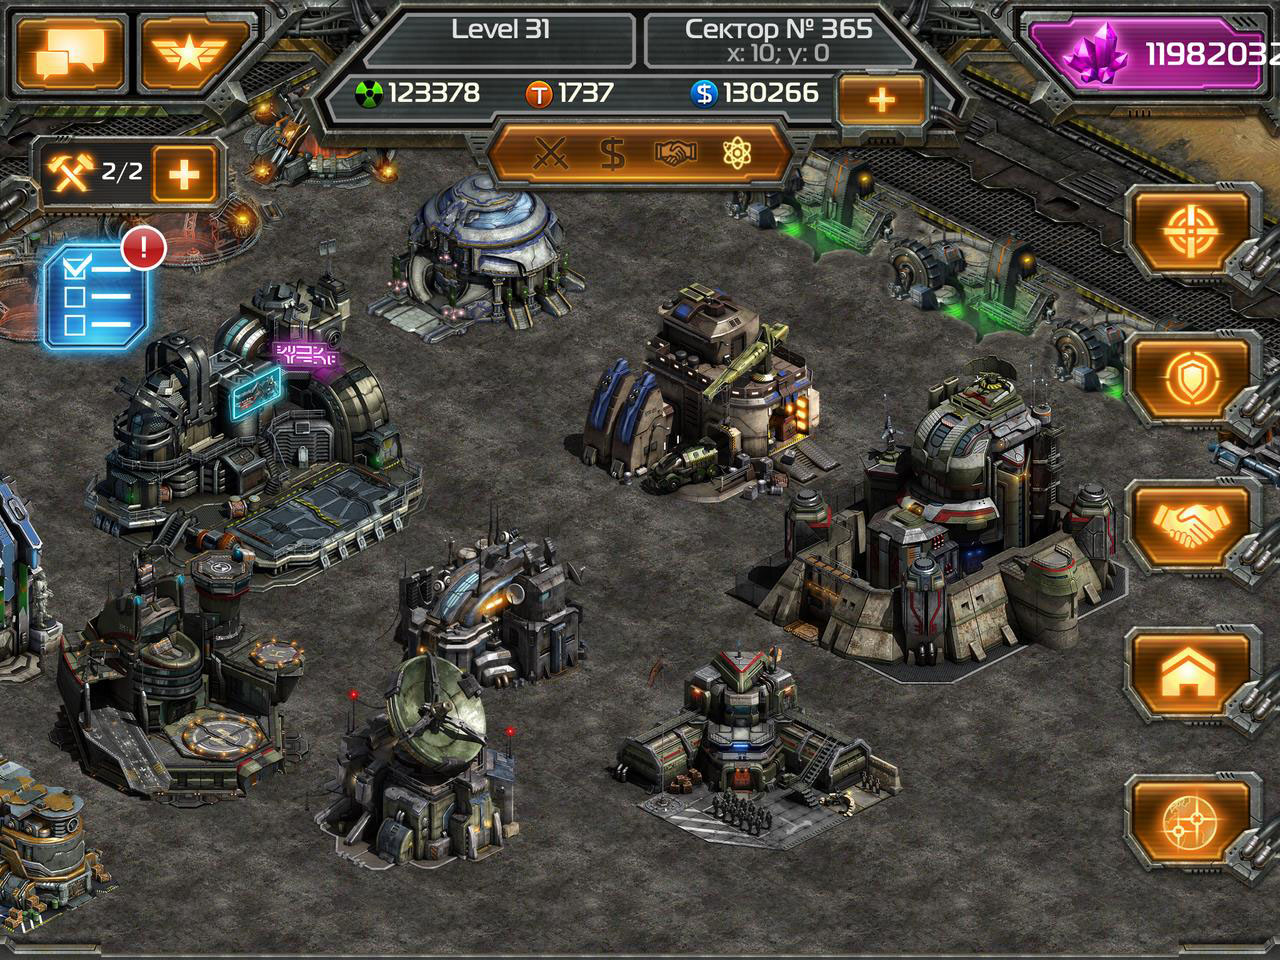 Bronze Award-winning iOS MMO Total Domination - Reborn updated with Mutagen Barrels, in-game FAQ section, and more